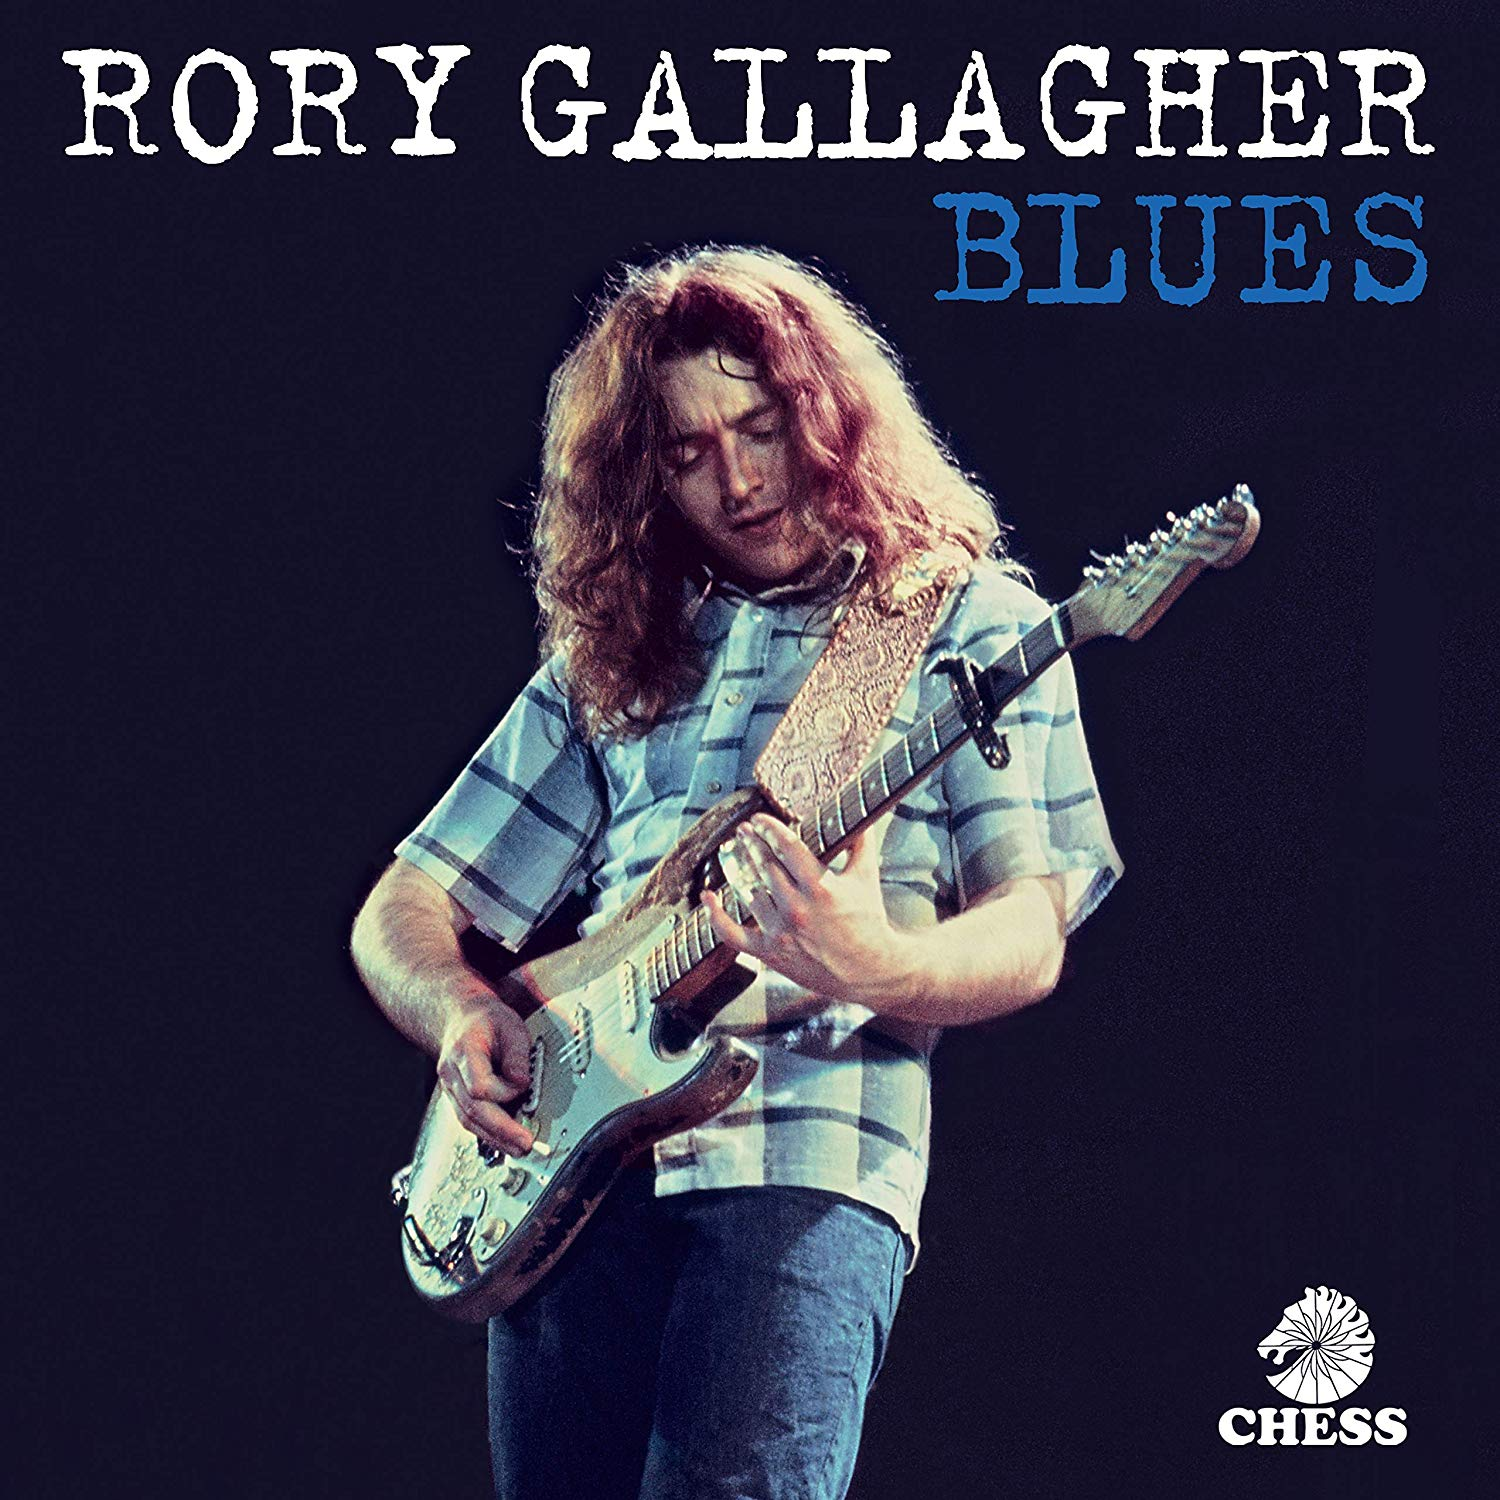 vinyl 2LP RORY GALLAGHER Blues